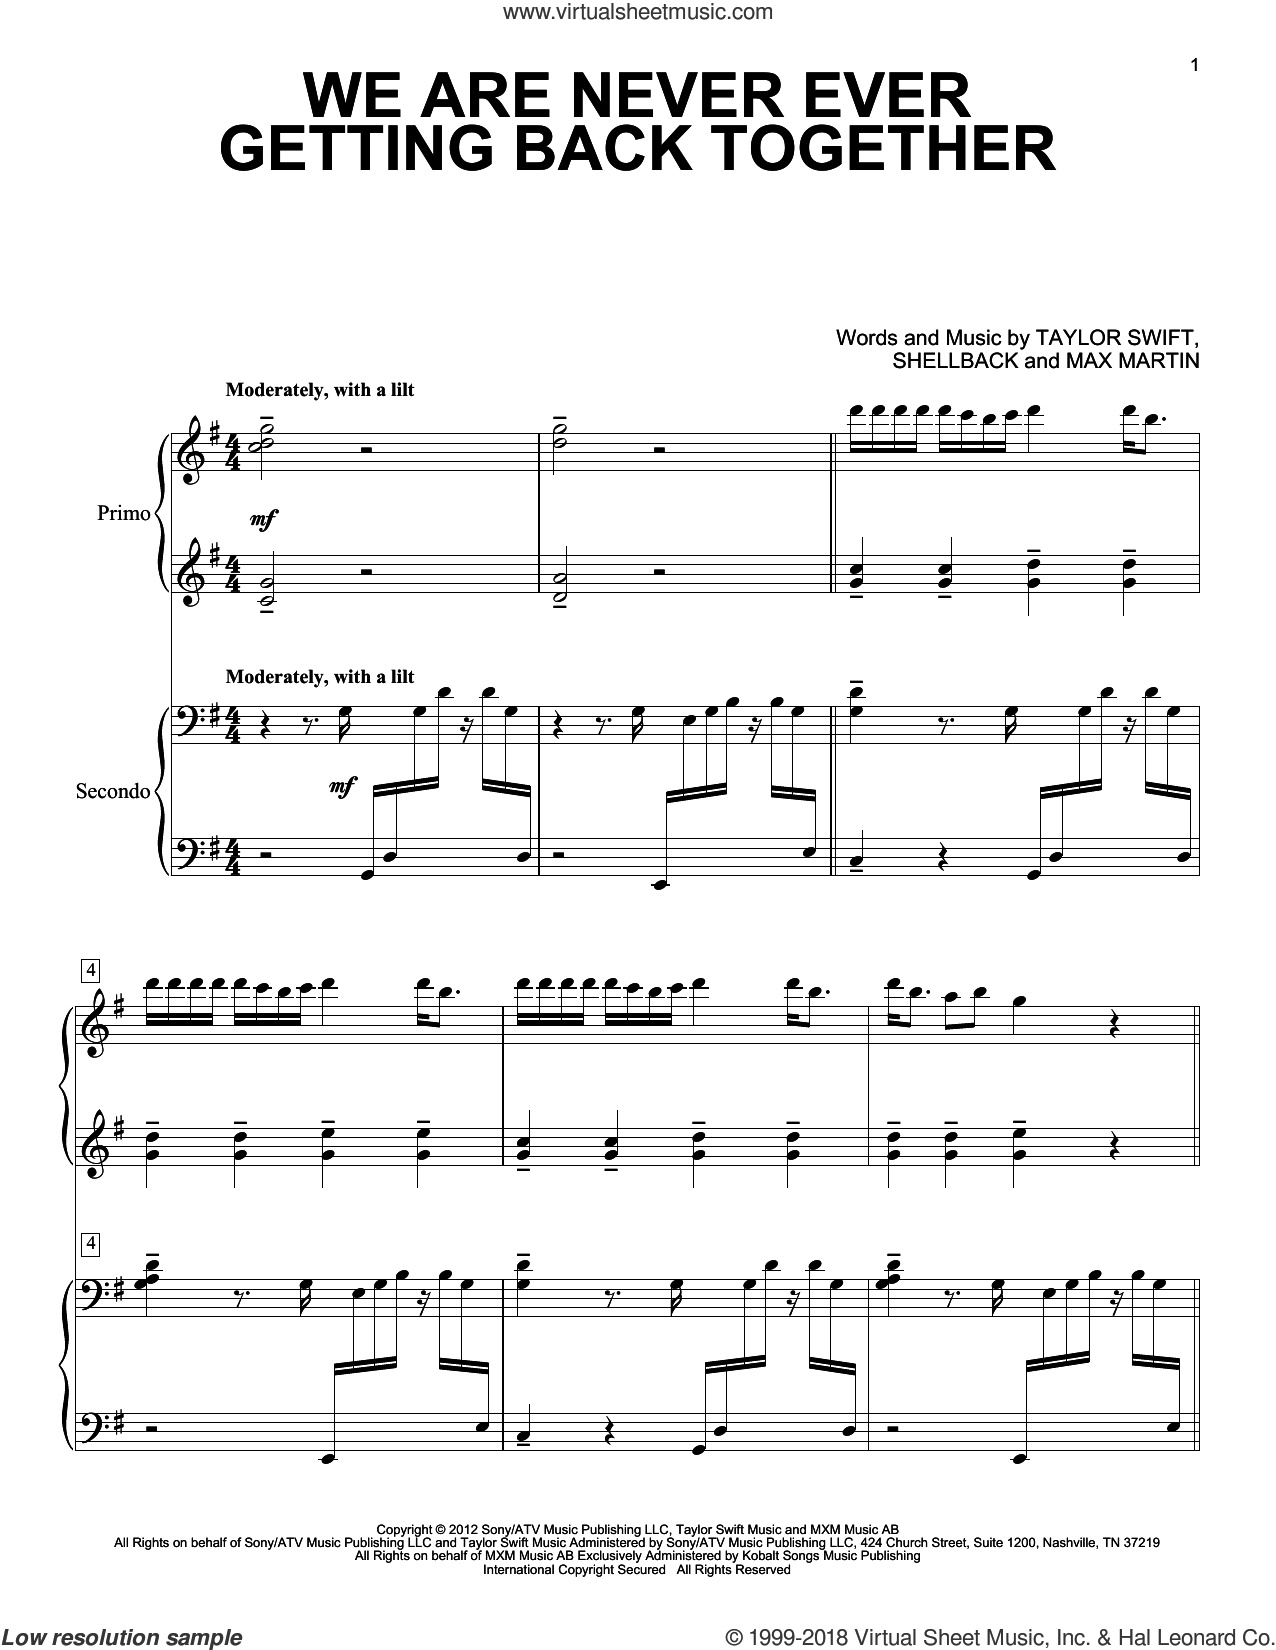 We Are Never Ever Getting Back Together sheet music for piano four hands (duets) by Shellback, Max Martin and Taylor Swift. Score Image Preview.